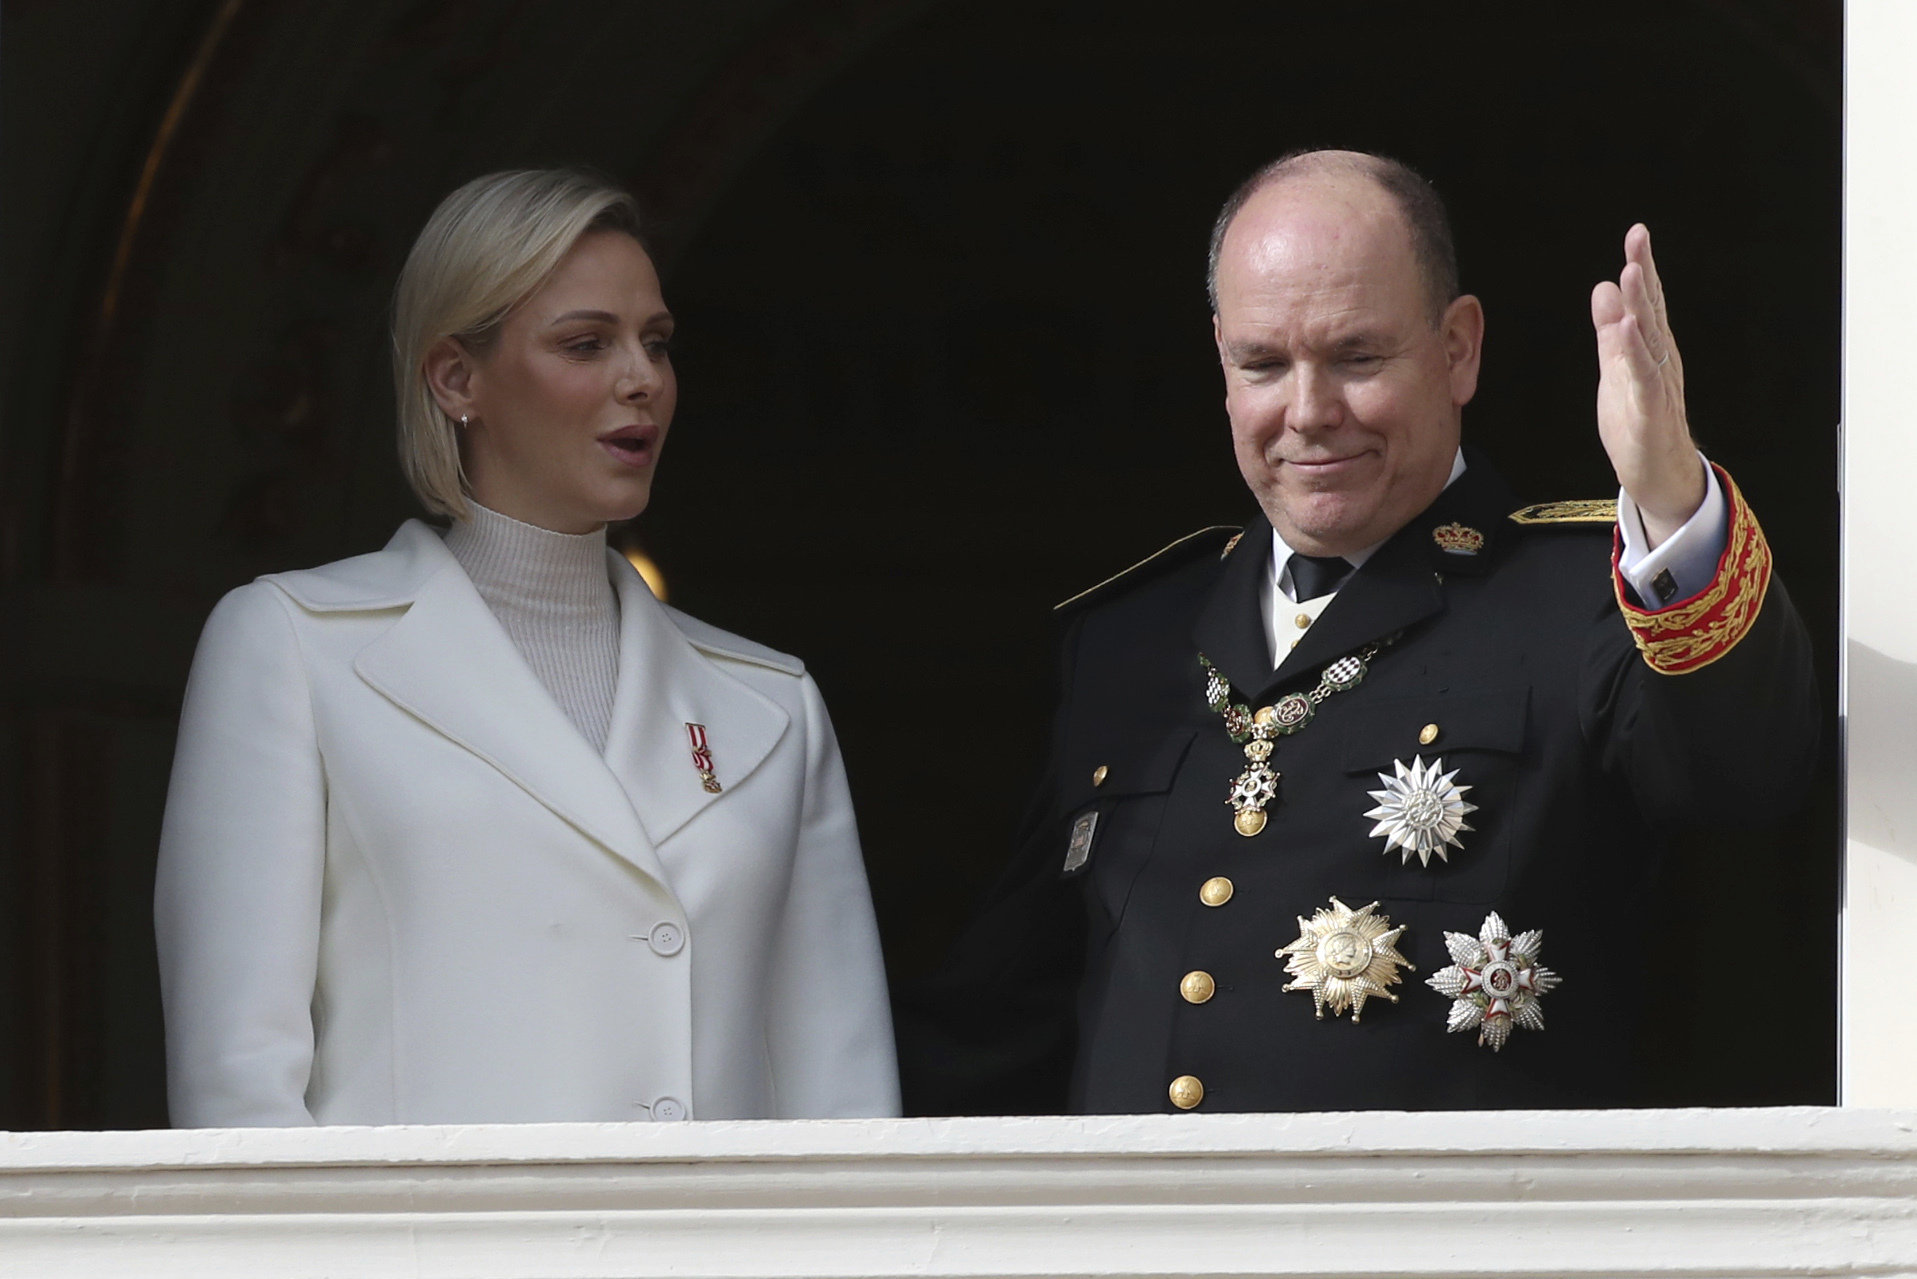 Monaco's head of state Prince Albert II tests positive for coronavirus